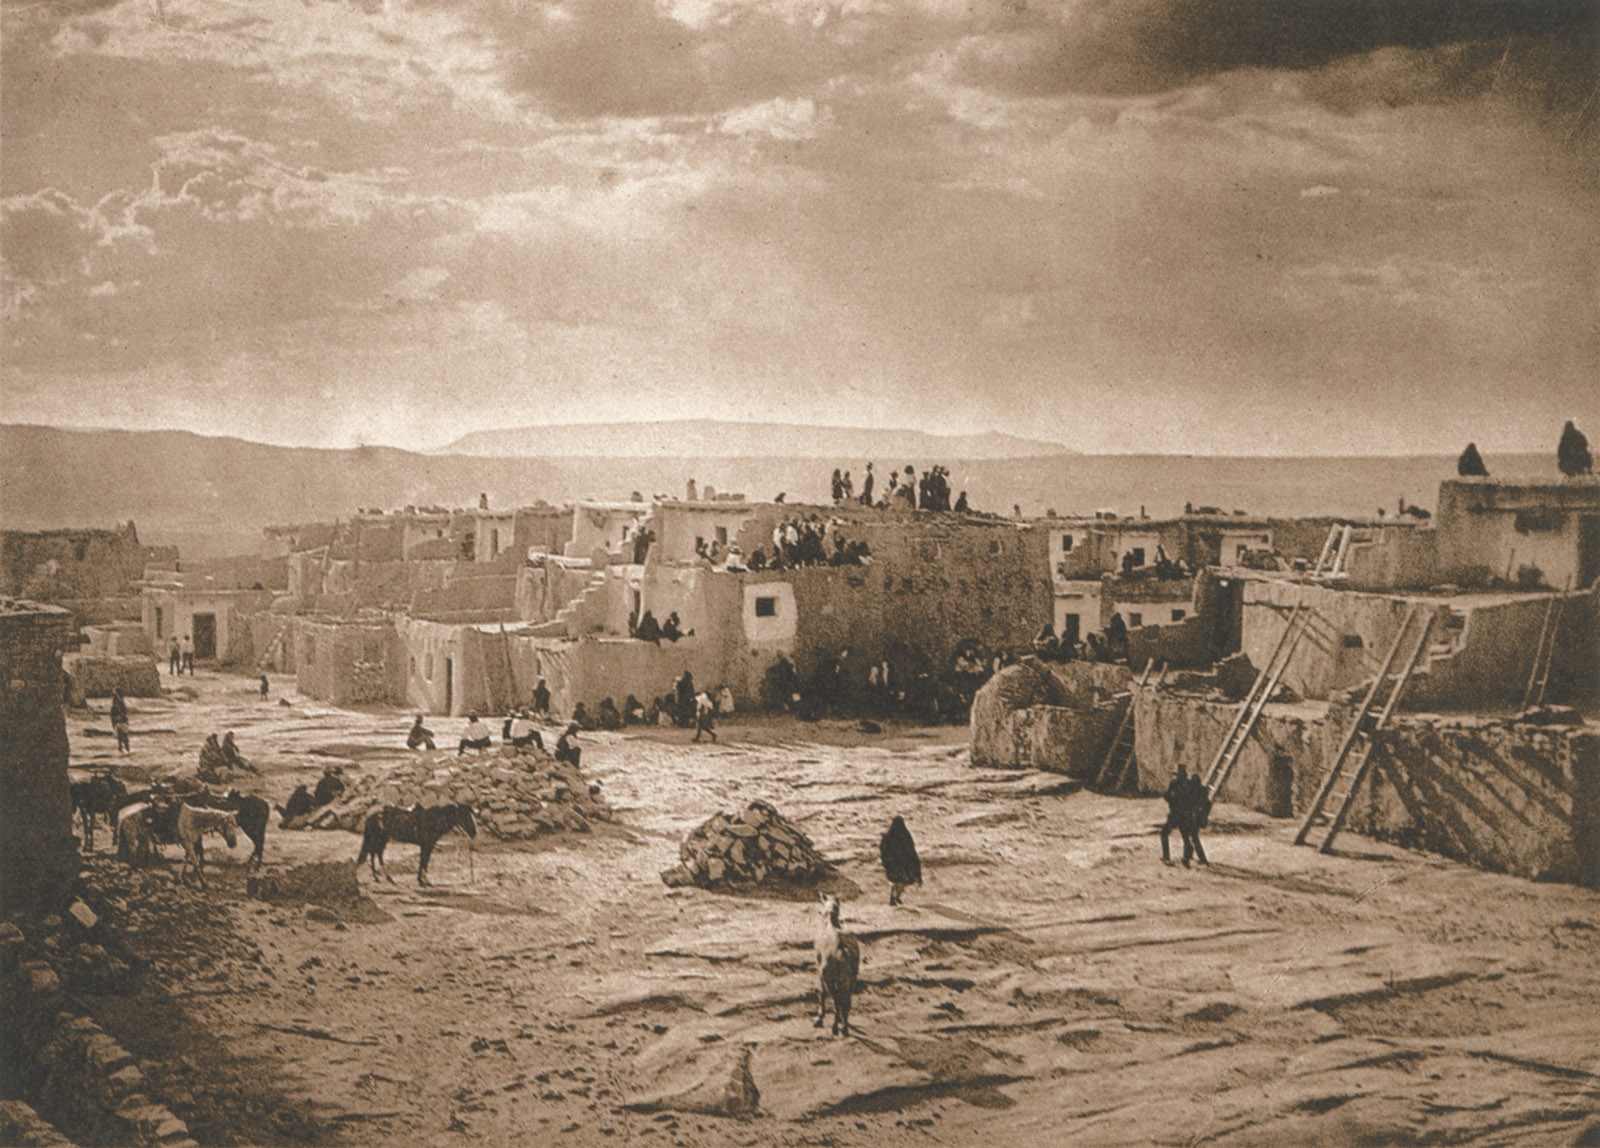 Edward S. Curtis: Feast Day at Acoma, 1904